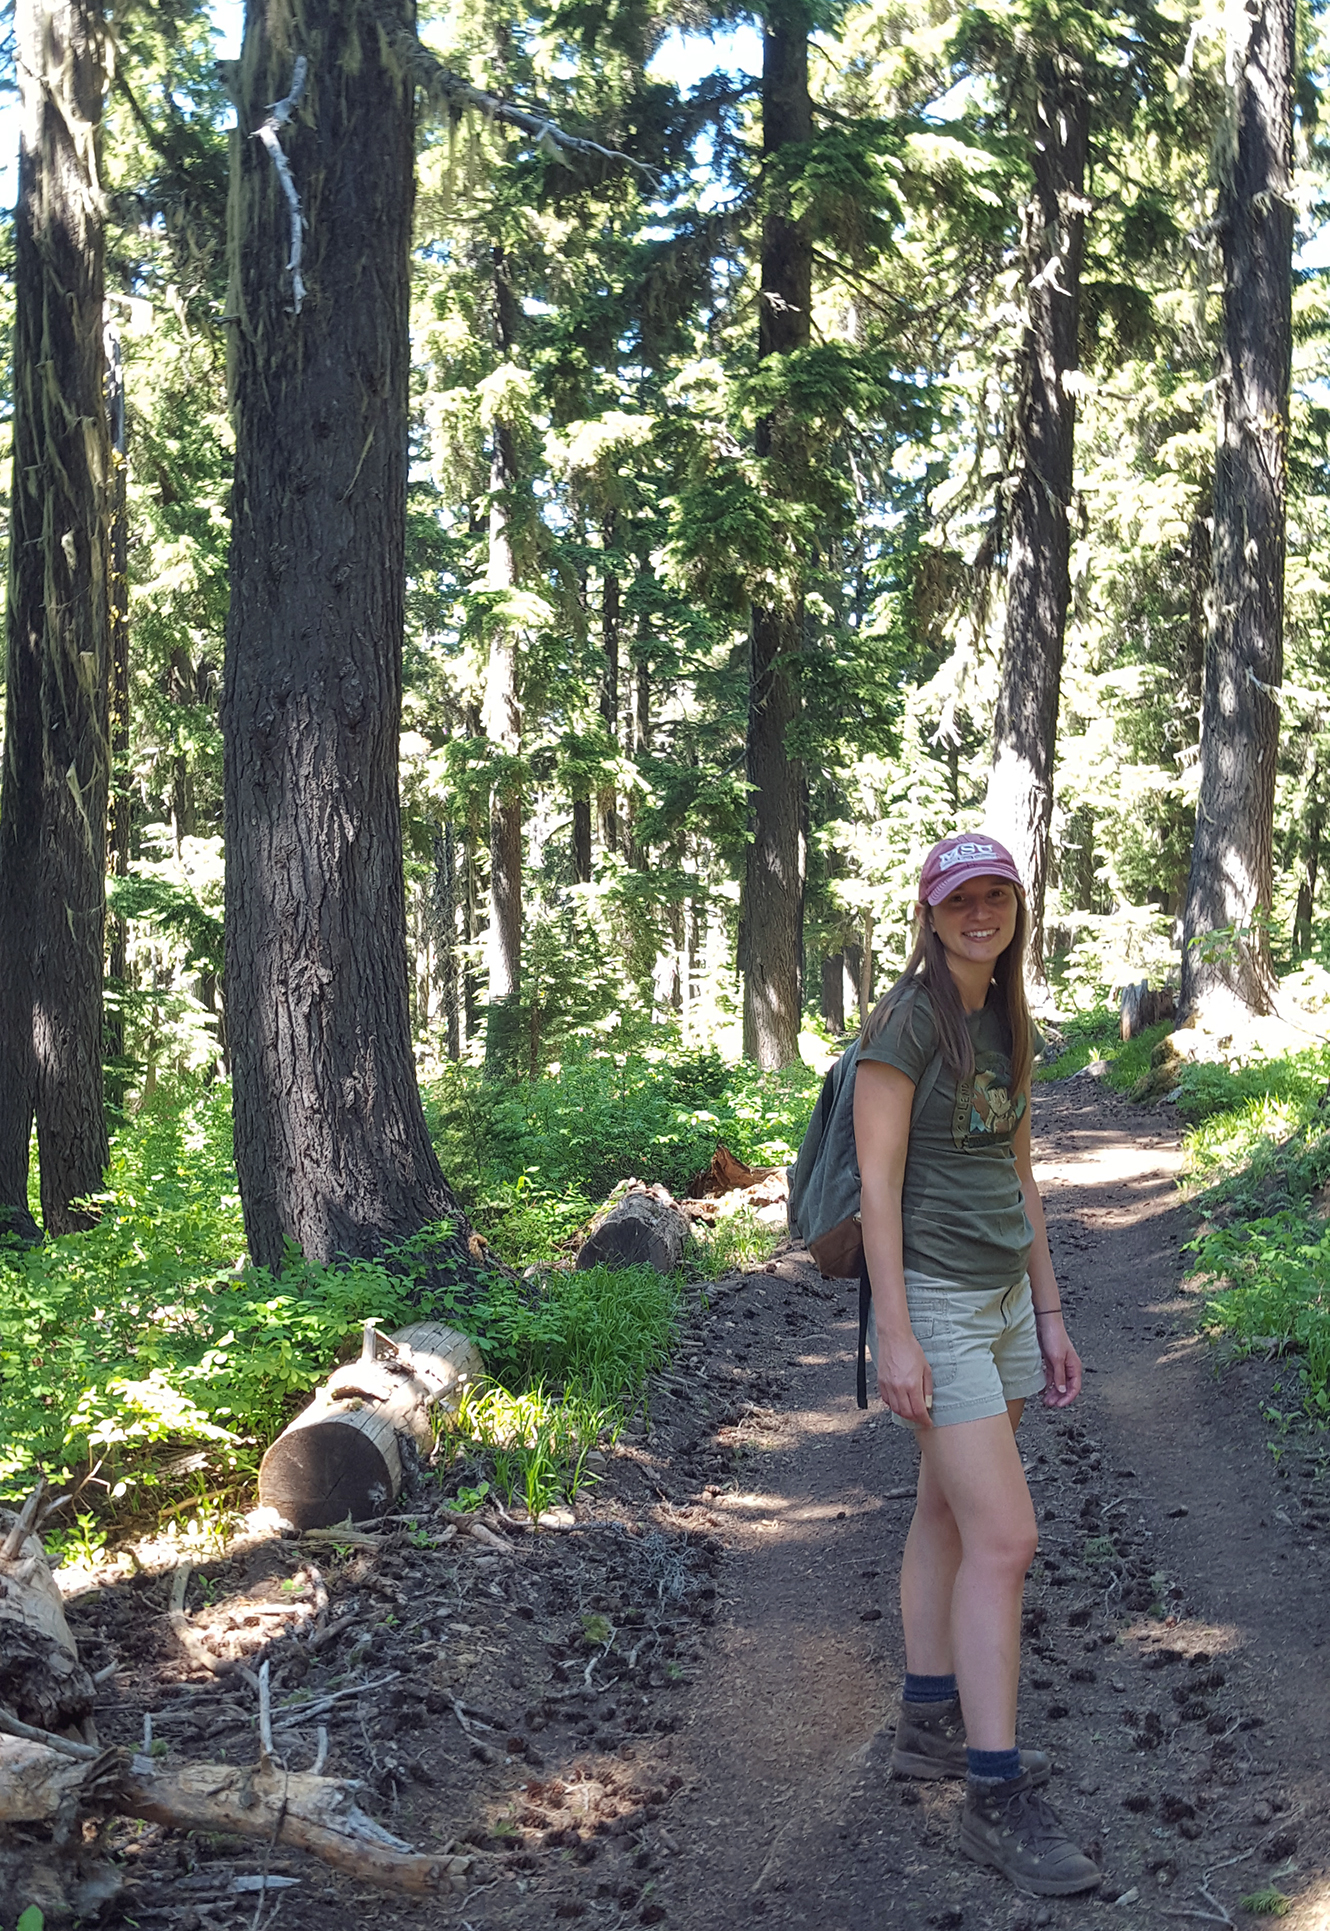 Photo: Woman poses on forest trail.